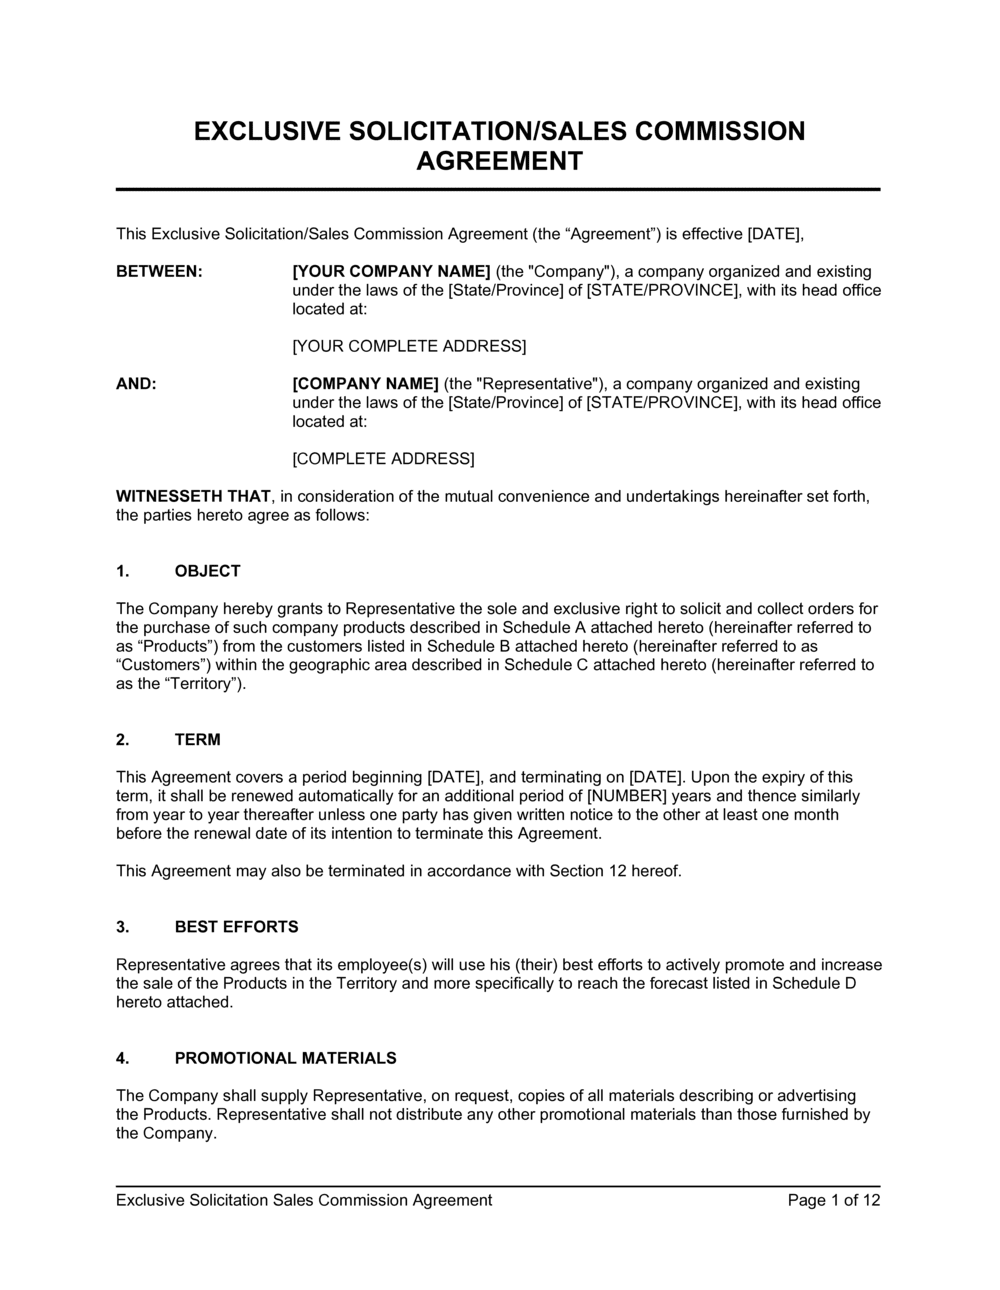 Business-in-a-Box's Exclusive Sollicitation Sales Commission Agreement Template